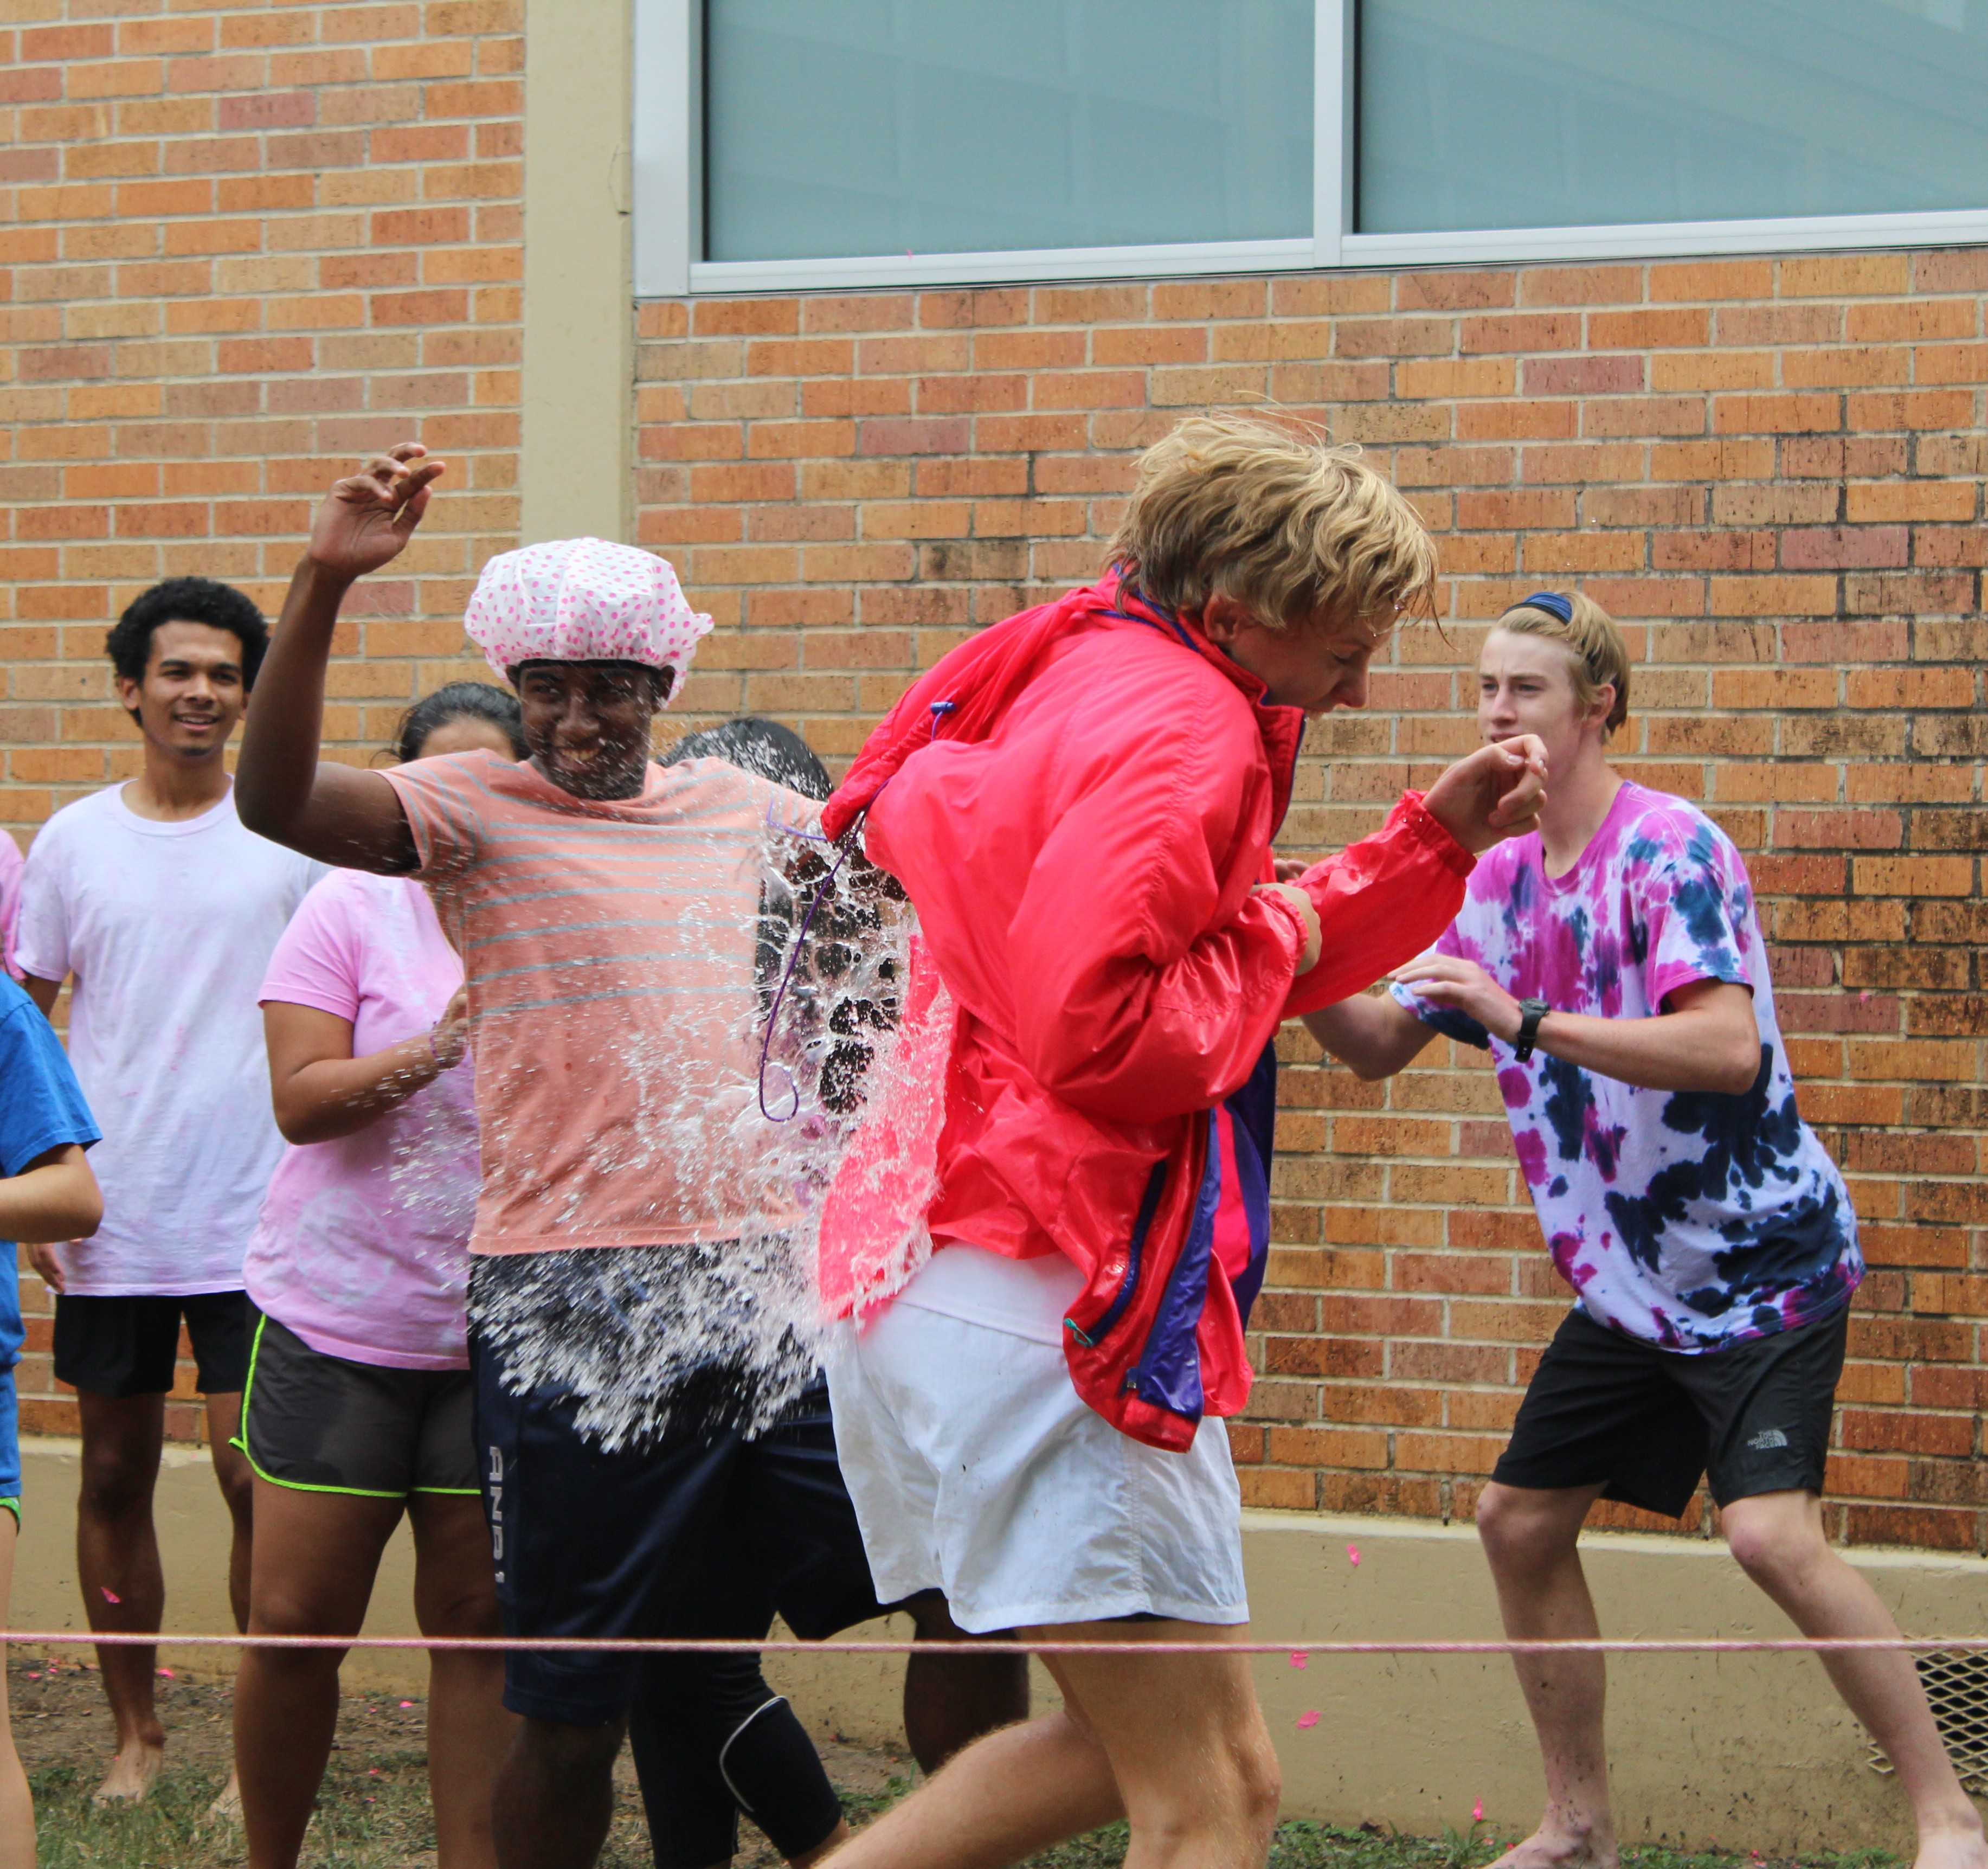 Senior David Ruwwe takes a water balloon to the back during the PALS annual Pink Week fundraiser